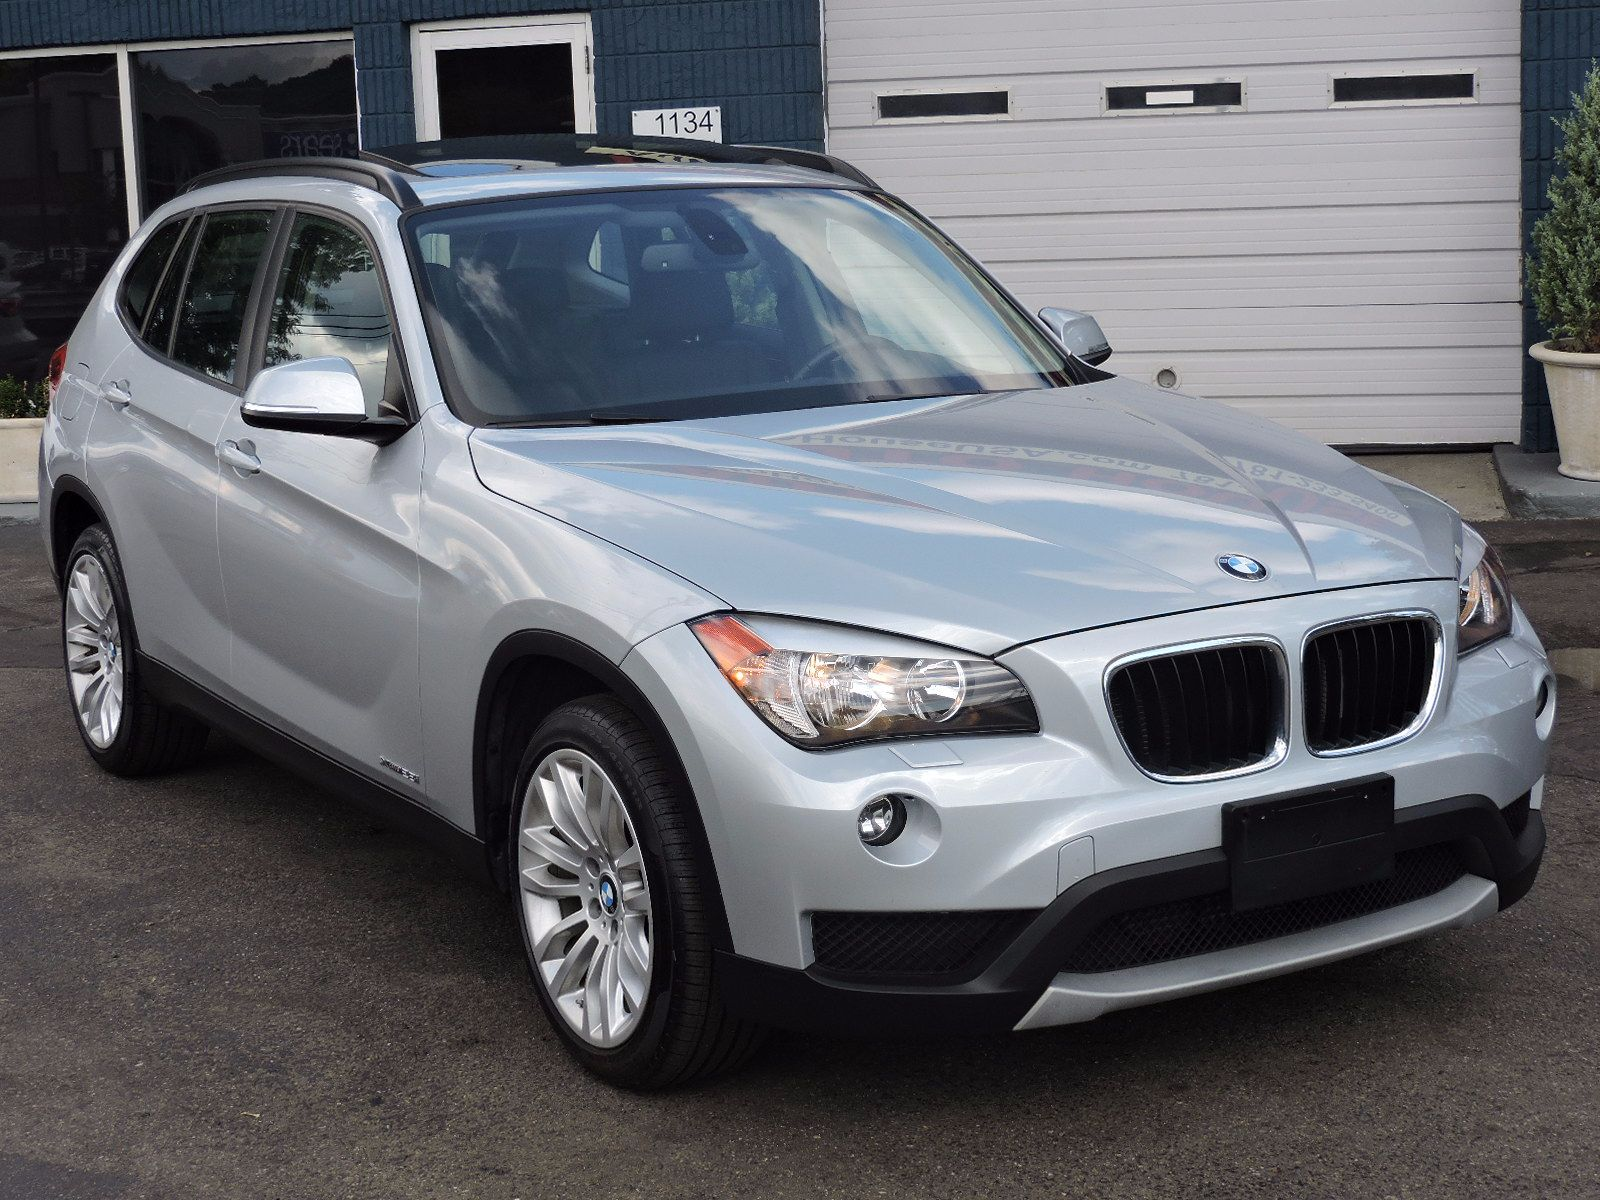 2013 BMW X1 xDrive 28i - All Wheel Drive - Navigation